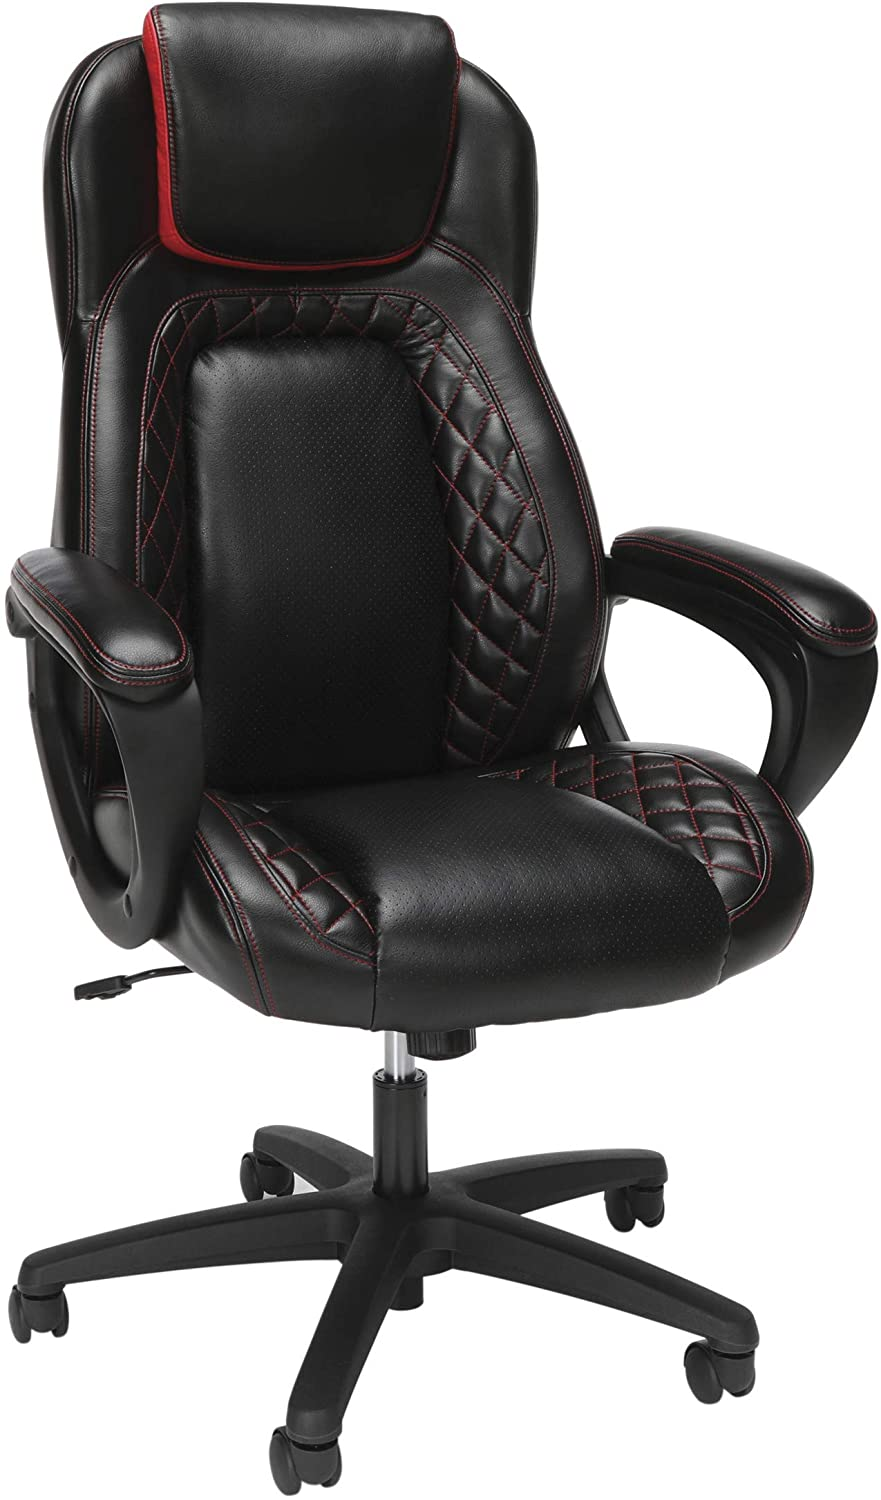 OFM Essentials Collection Racing Style SofThread Leather High Back Office Chair, in Red (ESS-6060-RED)